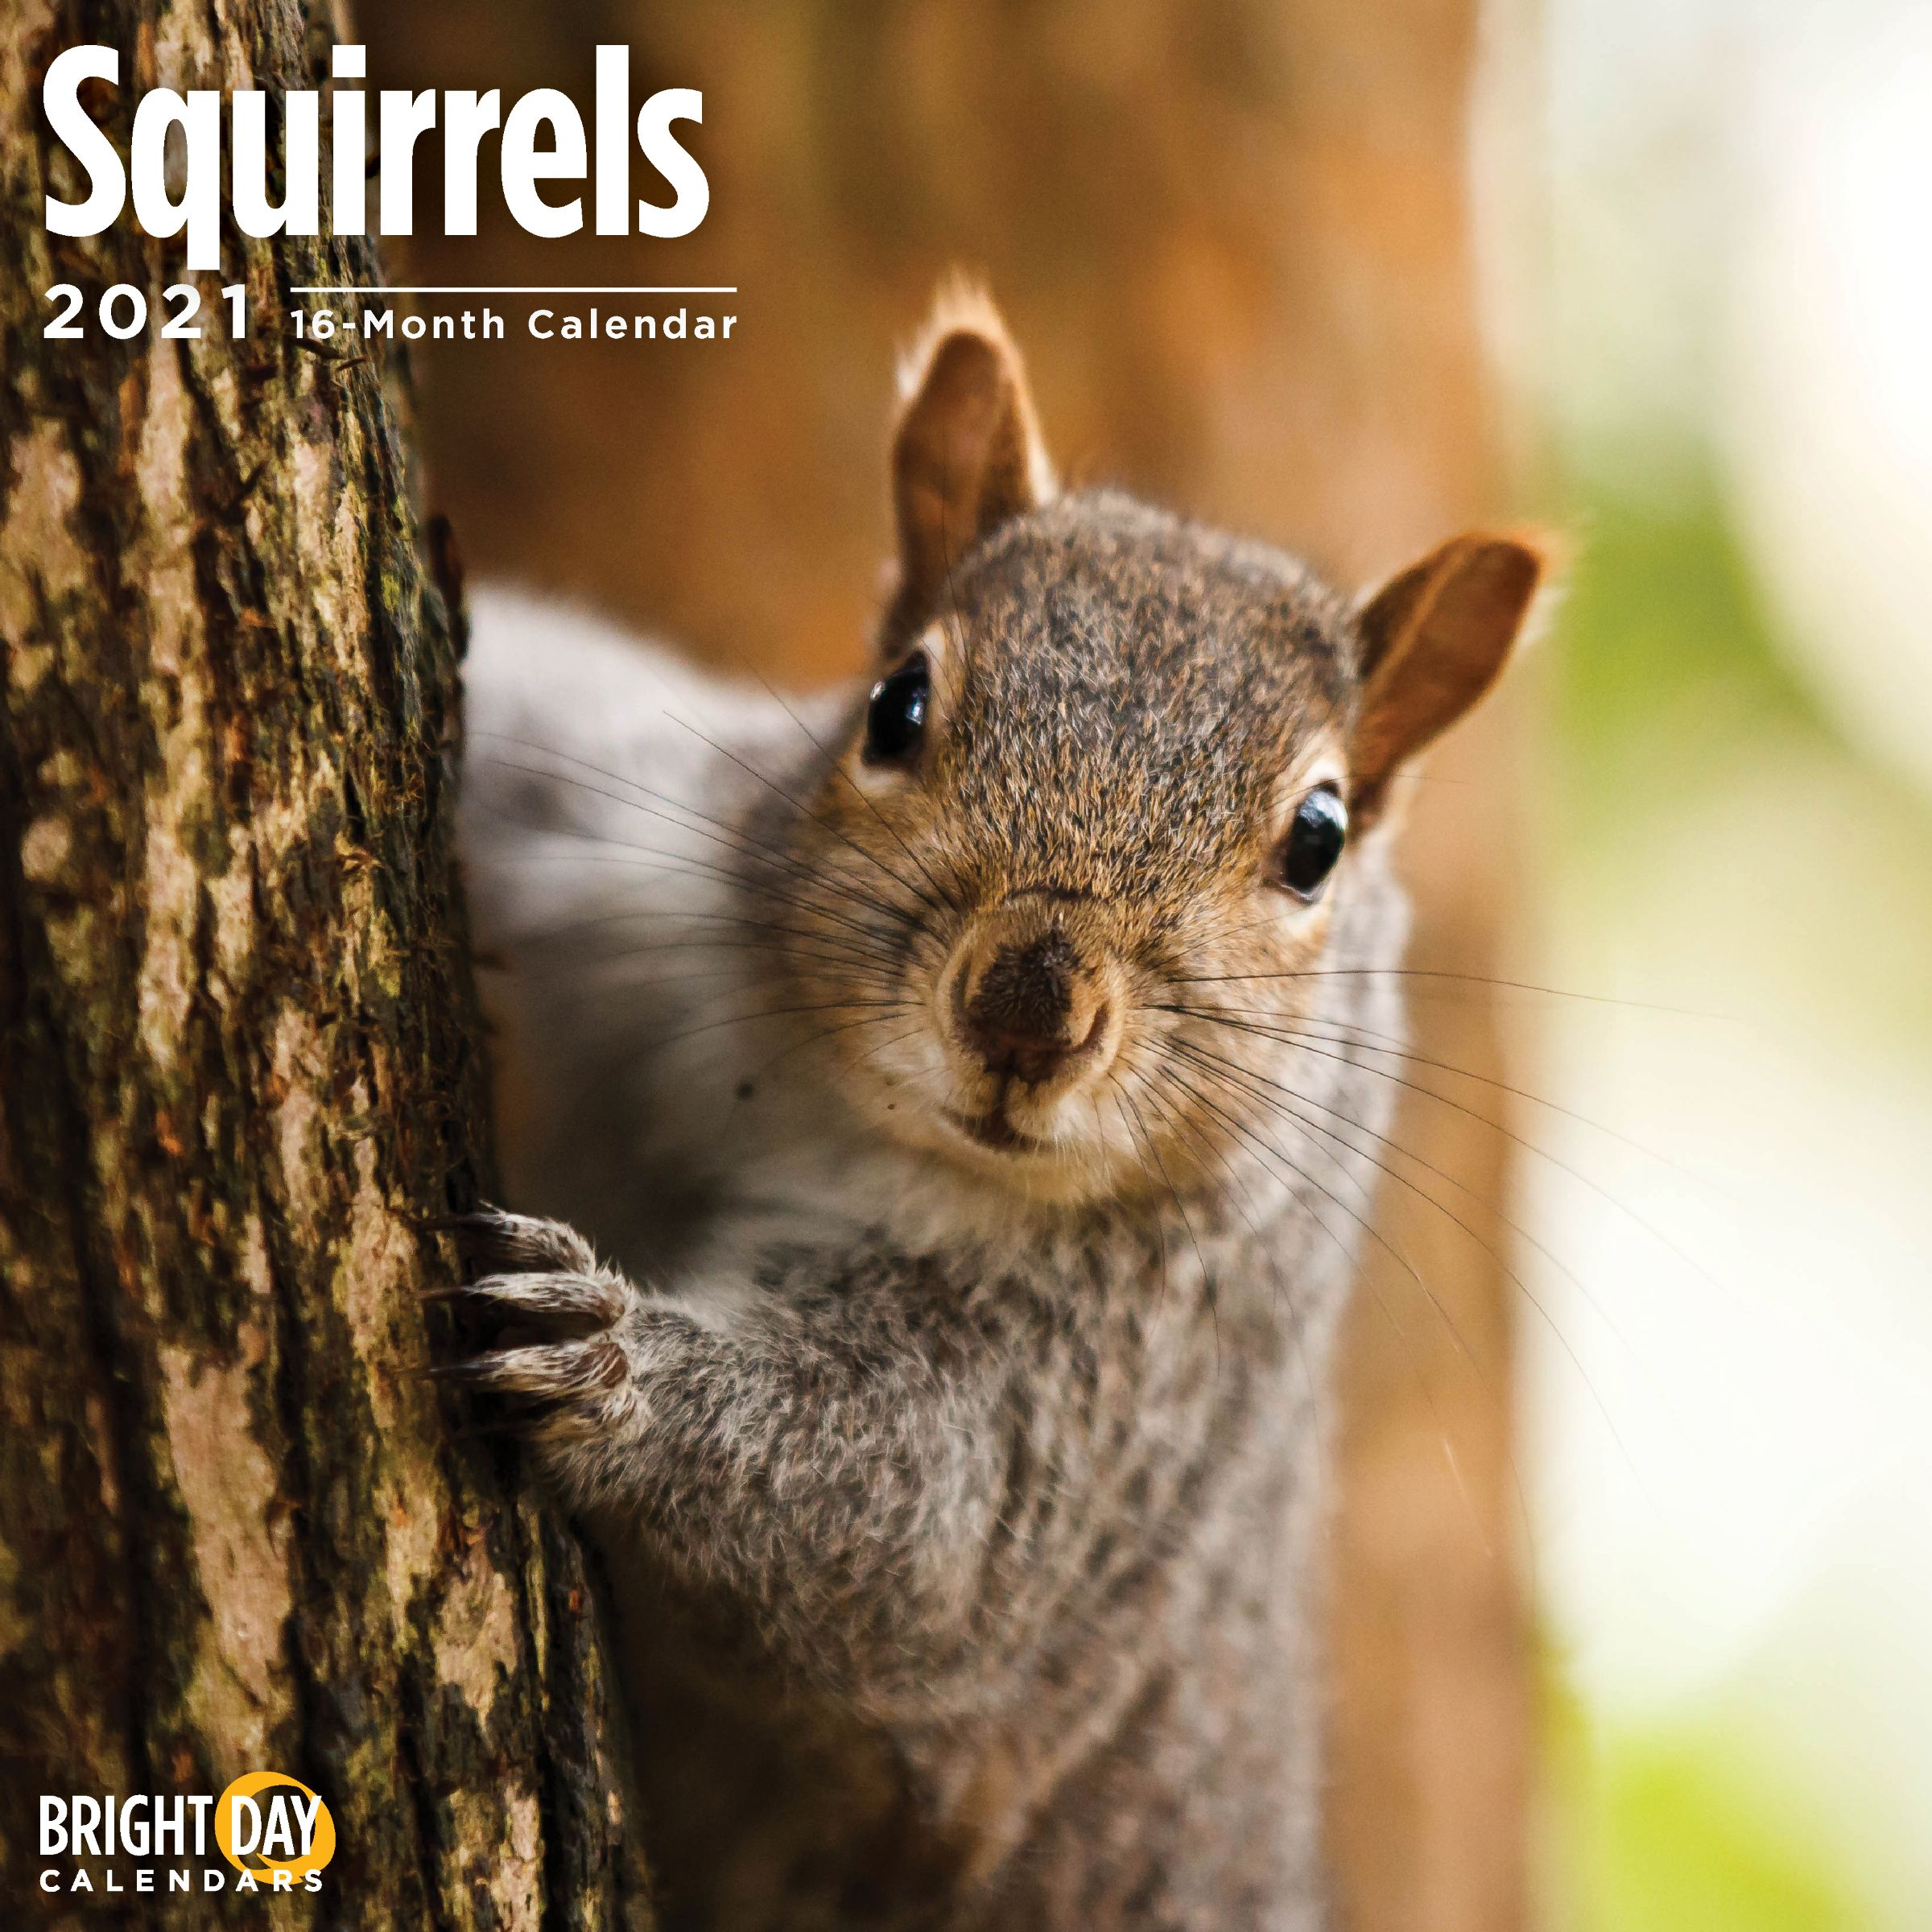 2021 Squirrels 12 x 12 Wall Calendar Cute Woodland Critter Small